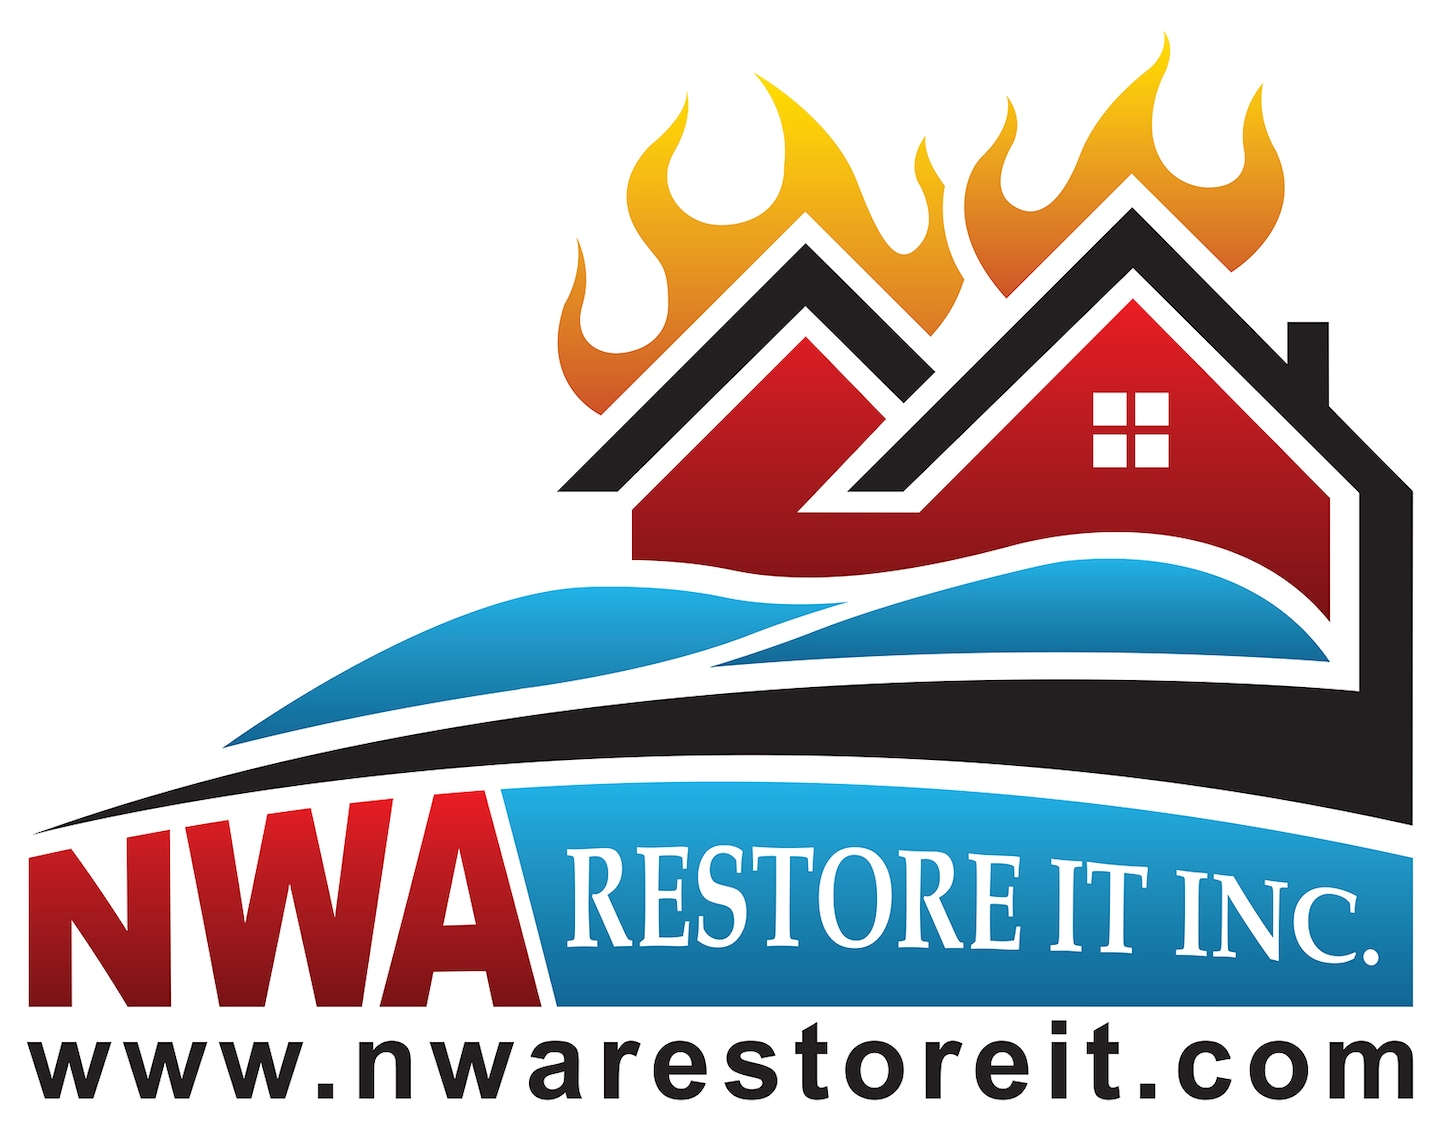 NWA Restore It Inc